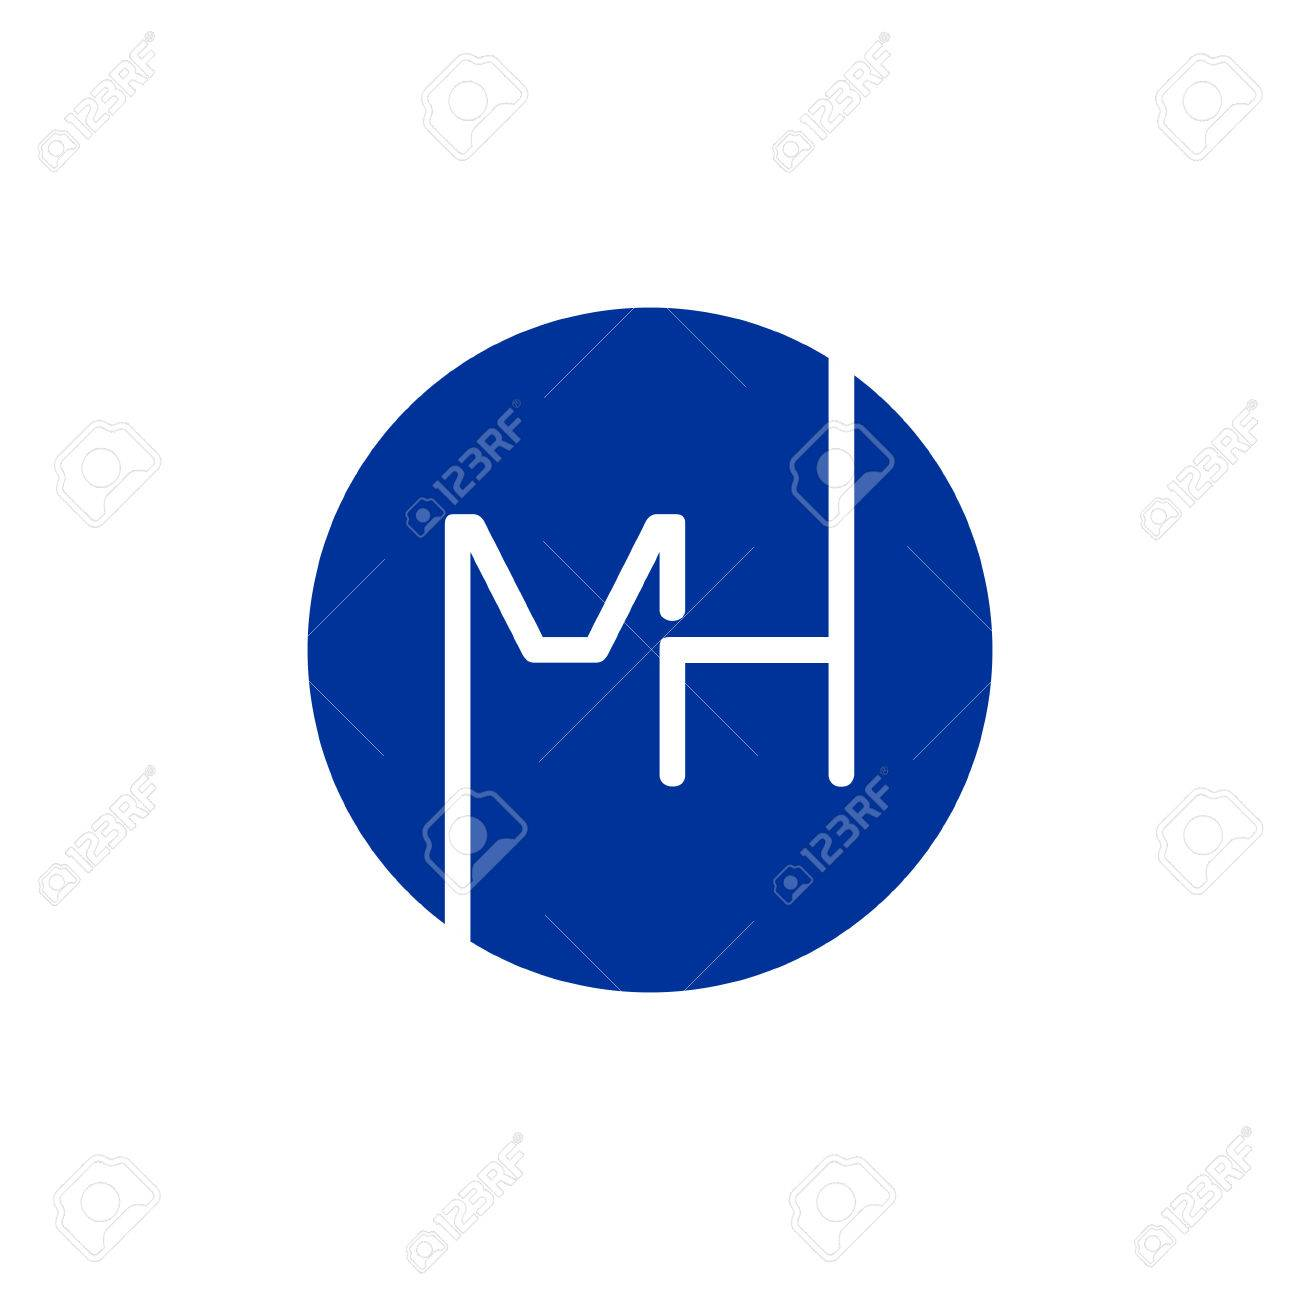 letter m and h logo icon design template elements royalty free